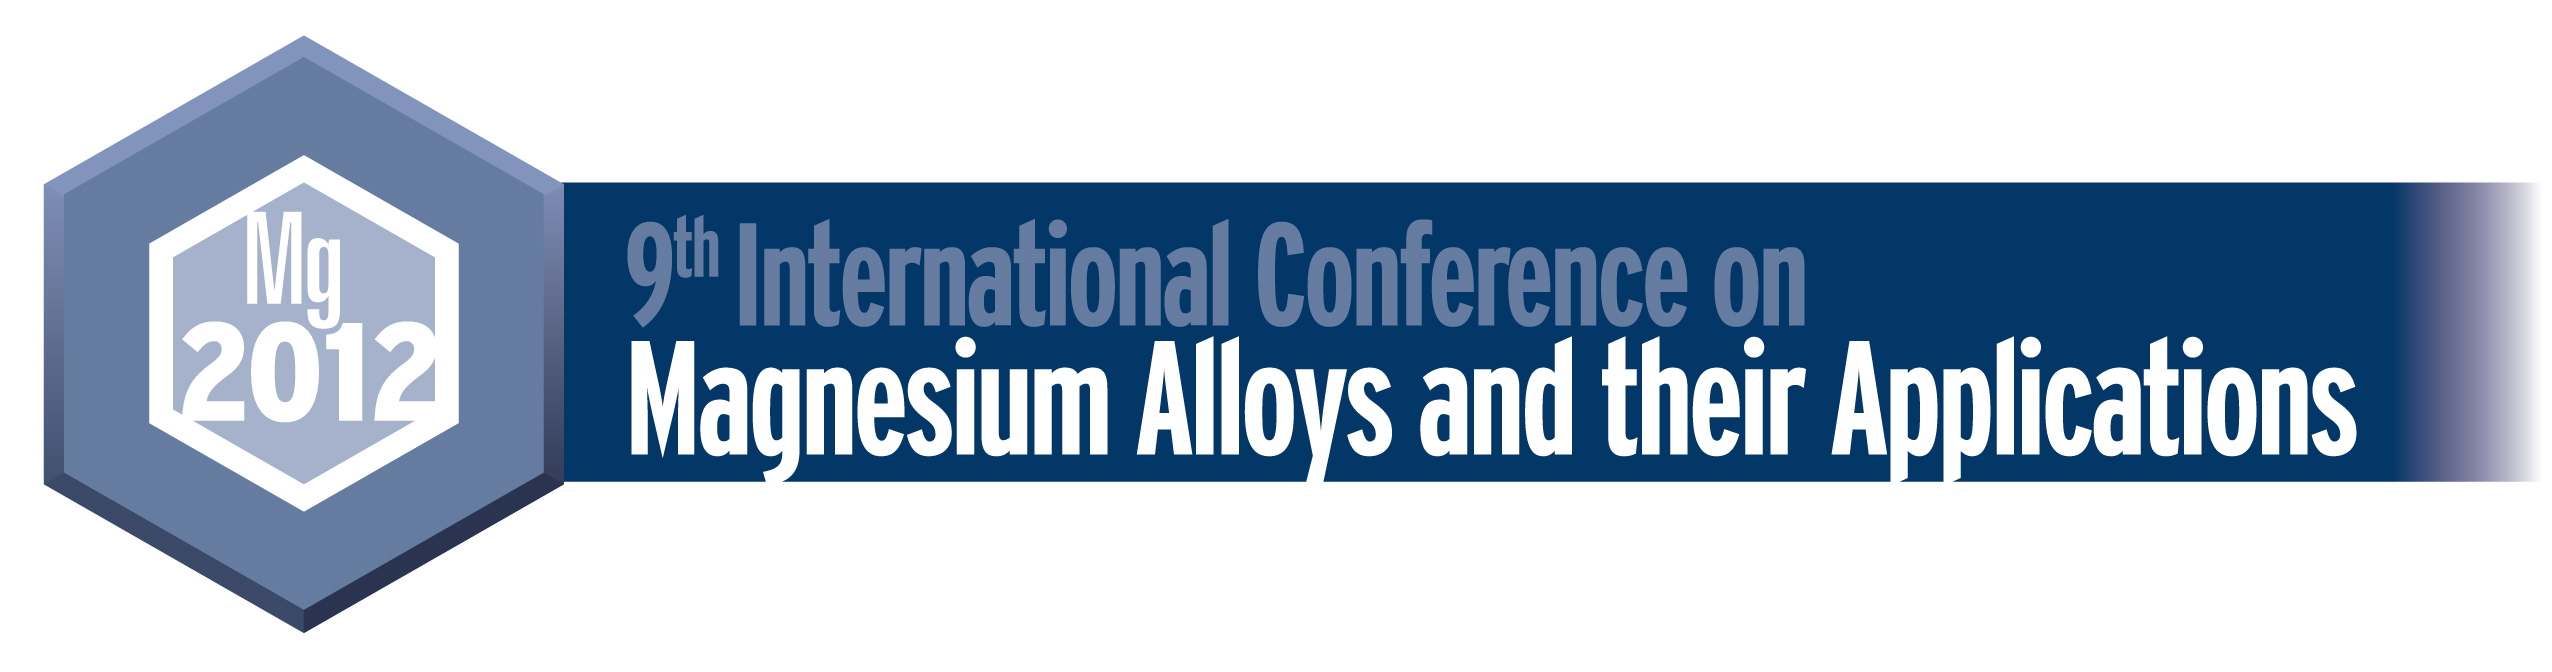 9th International Conference on Magnesium Alloys and Their Applications